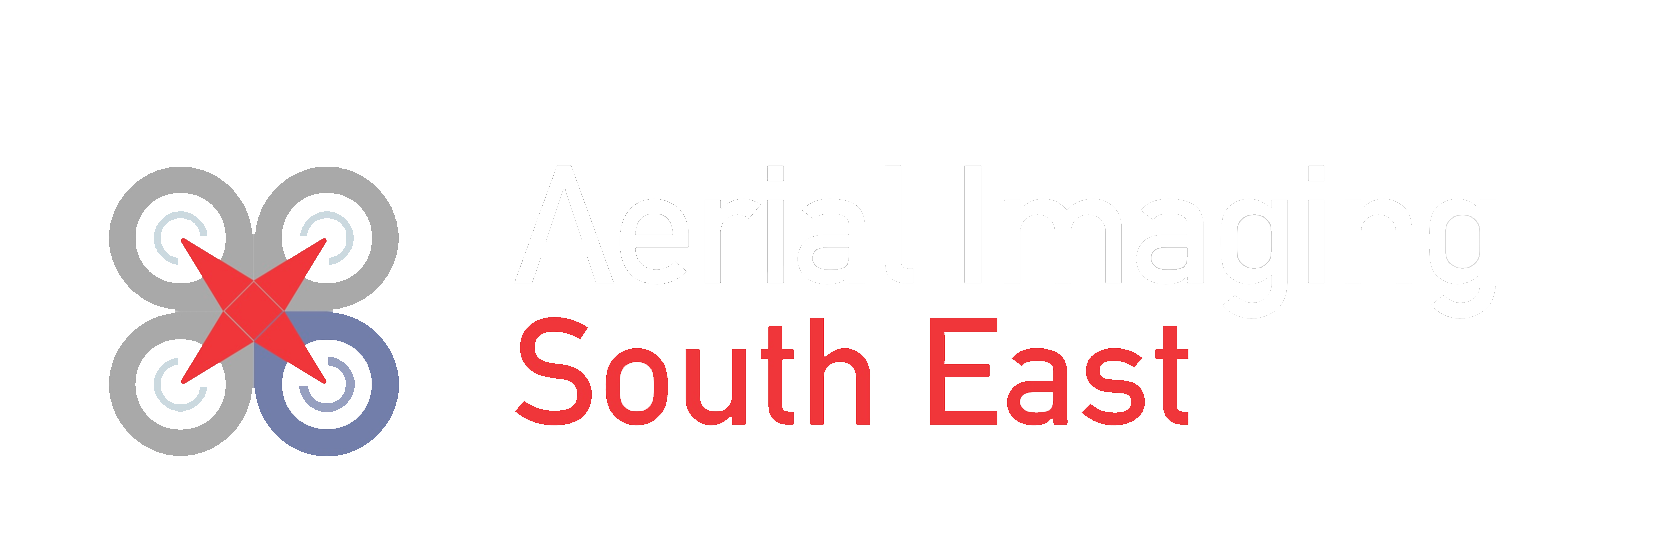 Aerial Imaging South East